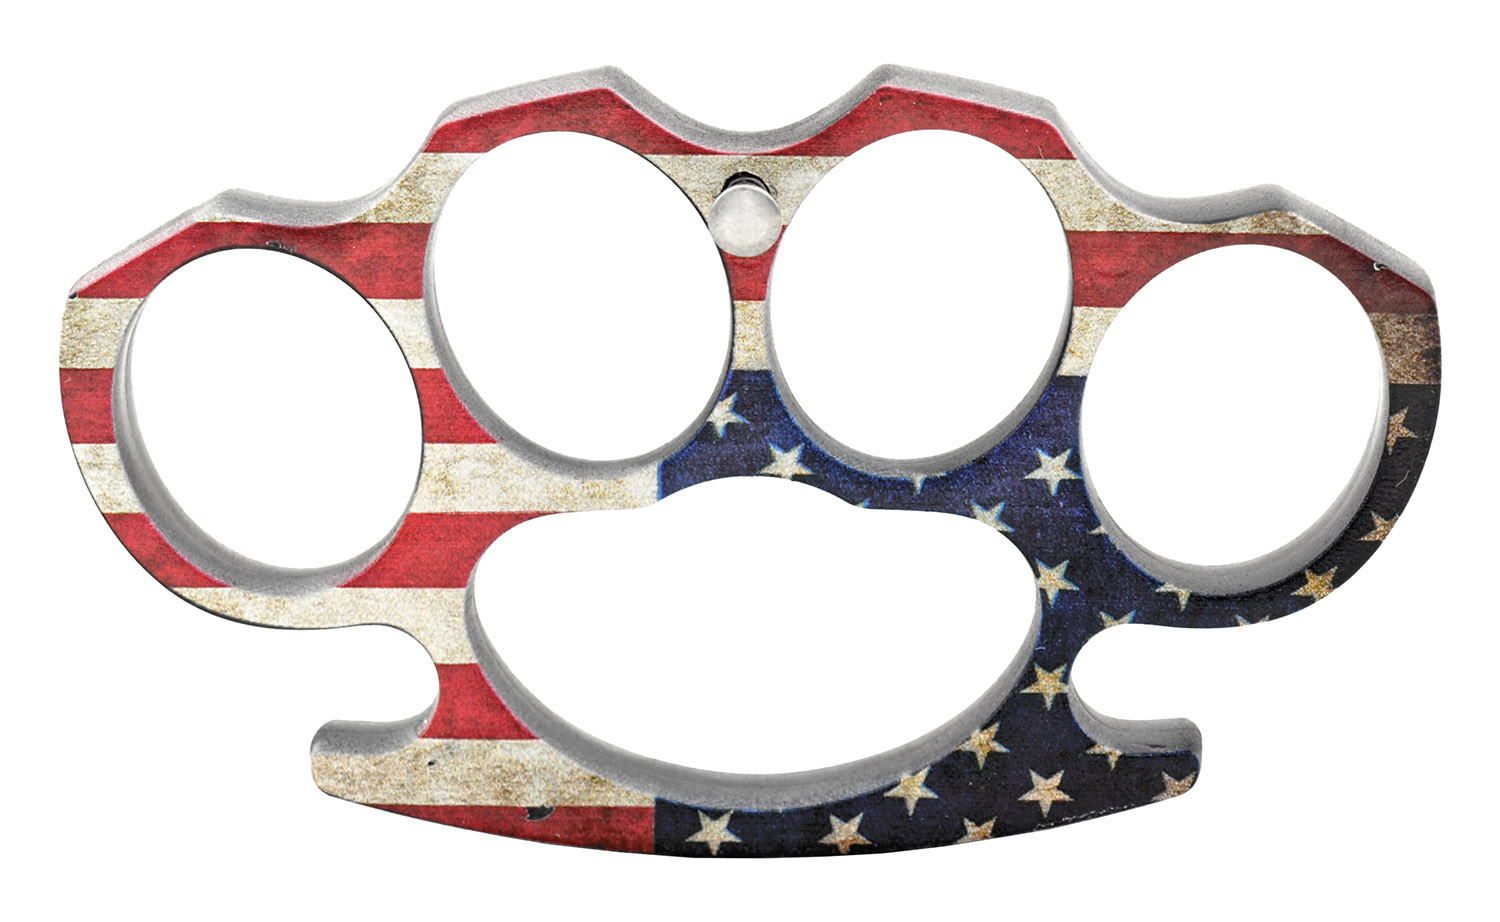 Plastic Knuckle Duster Belt Buckle with Prong Attachment - US Flag